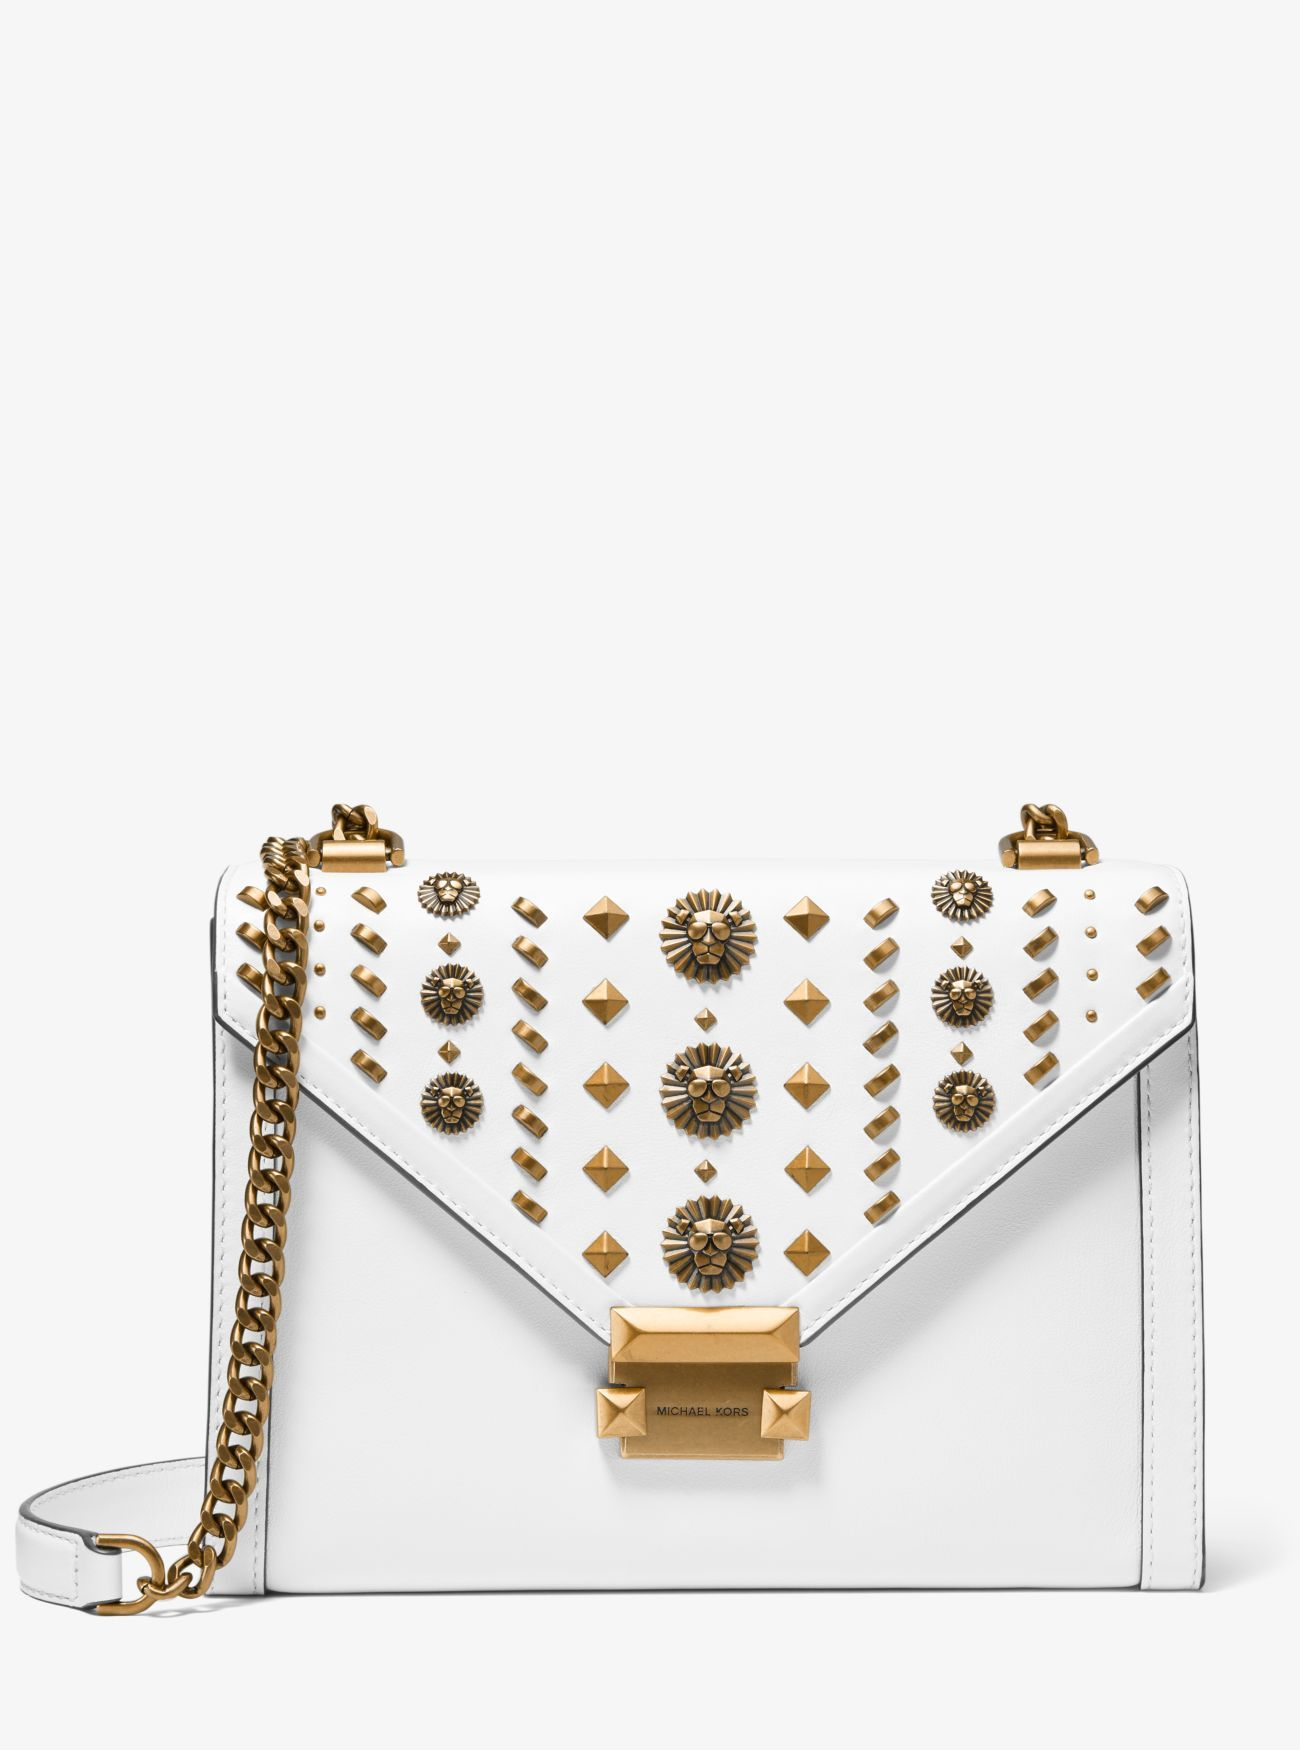 d2f6965e6 Michael Kors Whitney Large Embellished Leather Bag in Optic White – Today's  Fashion Item